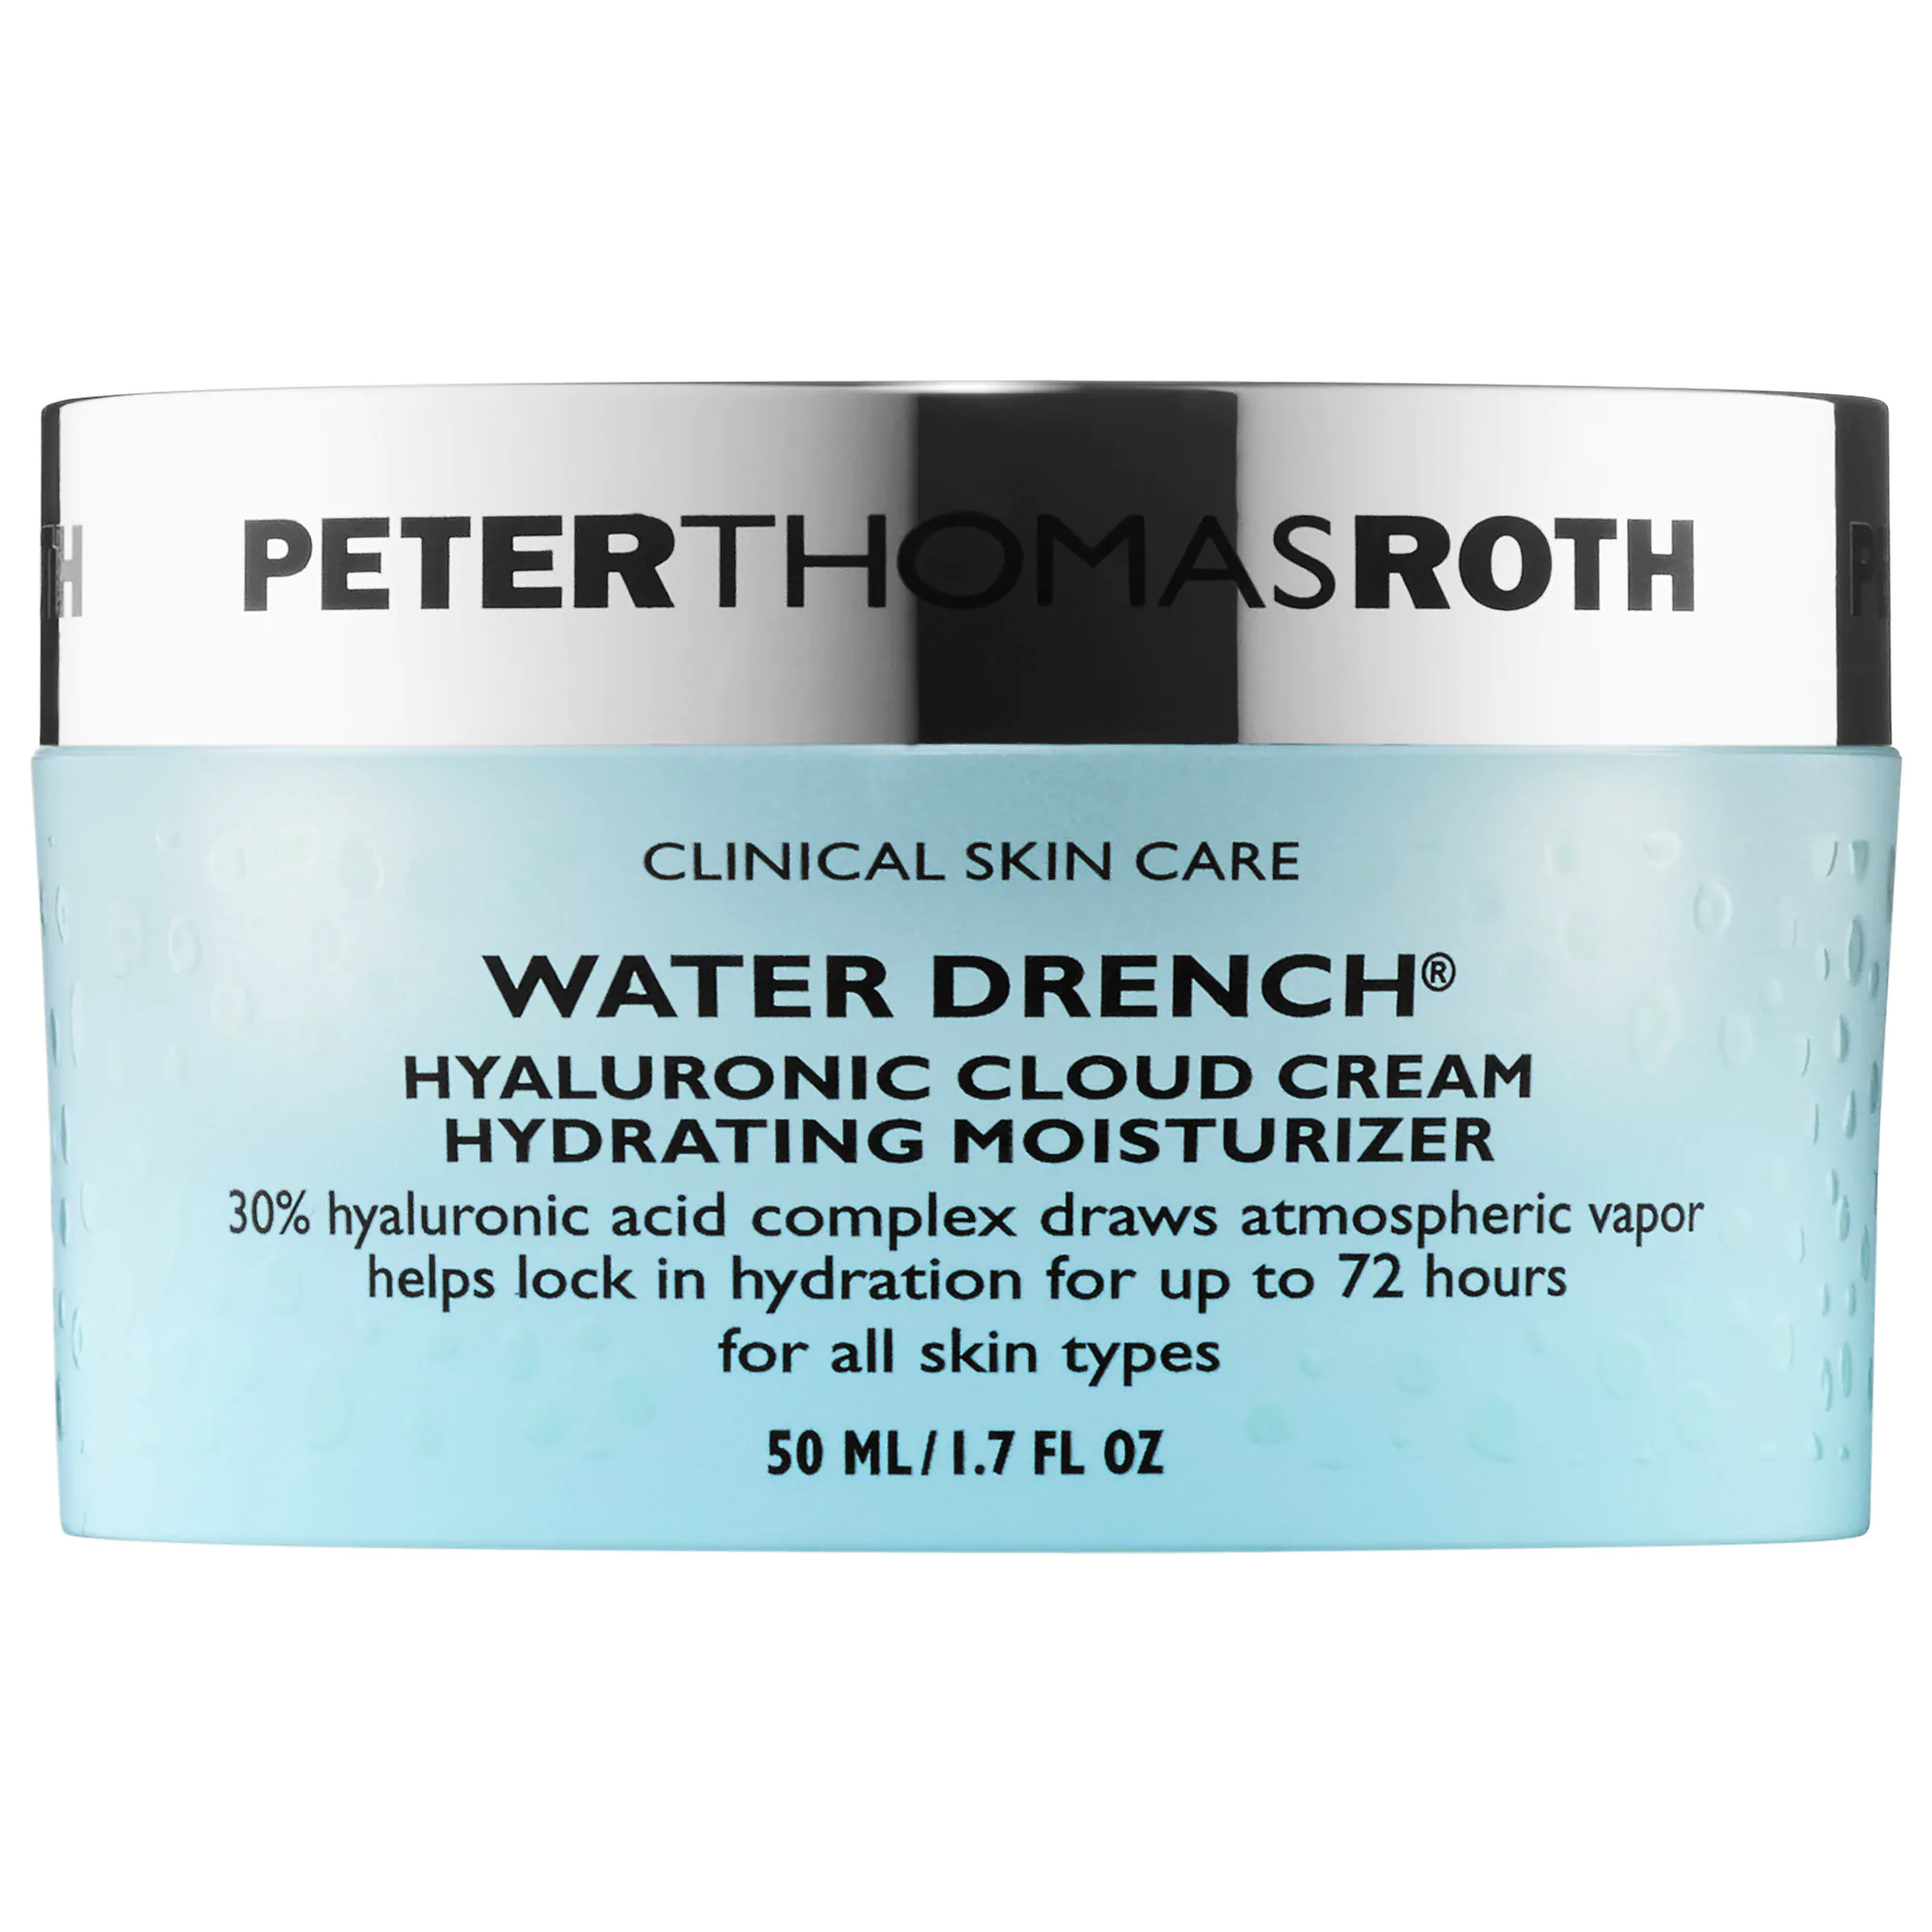 Peter Thomas Roth-Water Drench Hyaluronic Cloud Cream